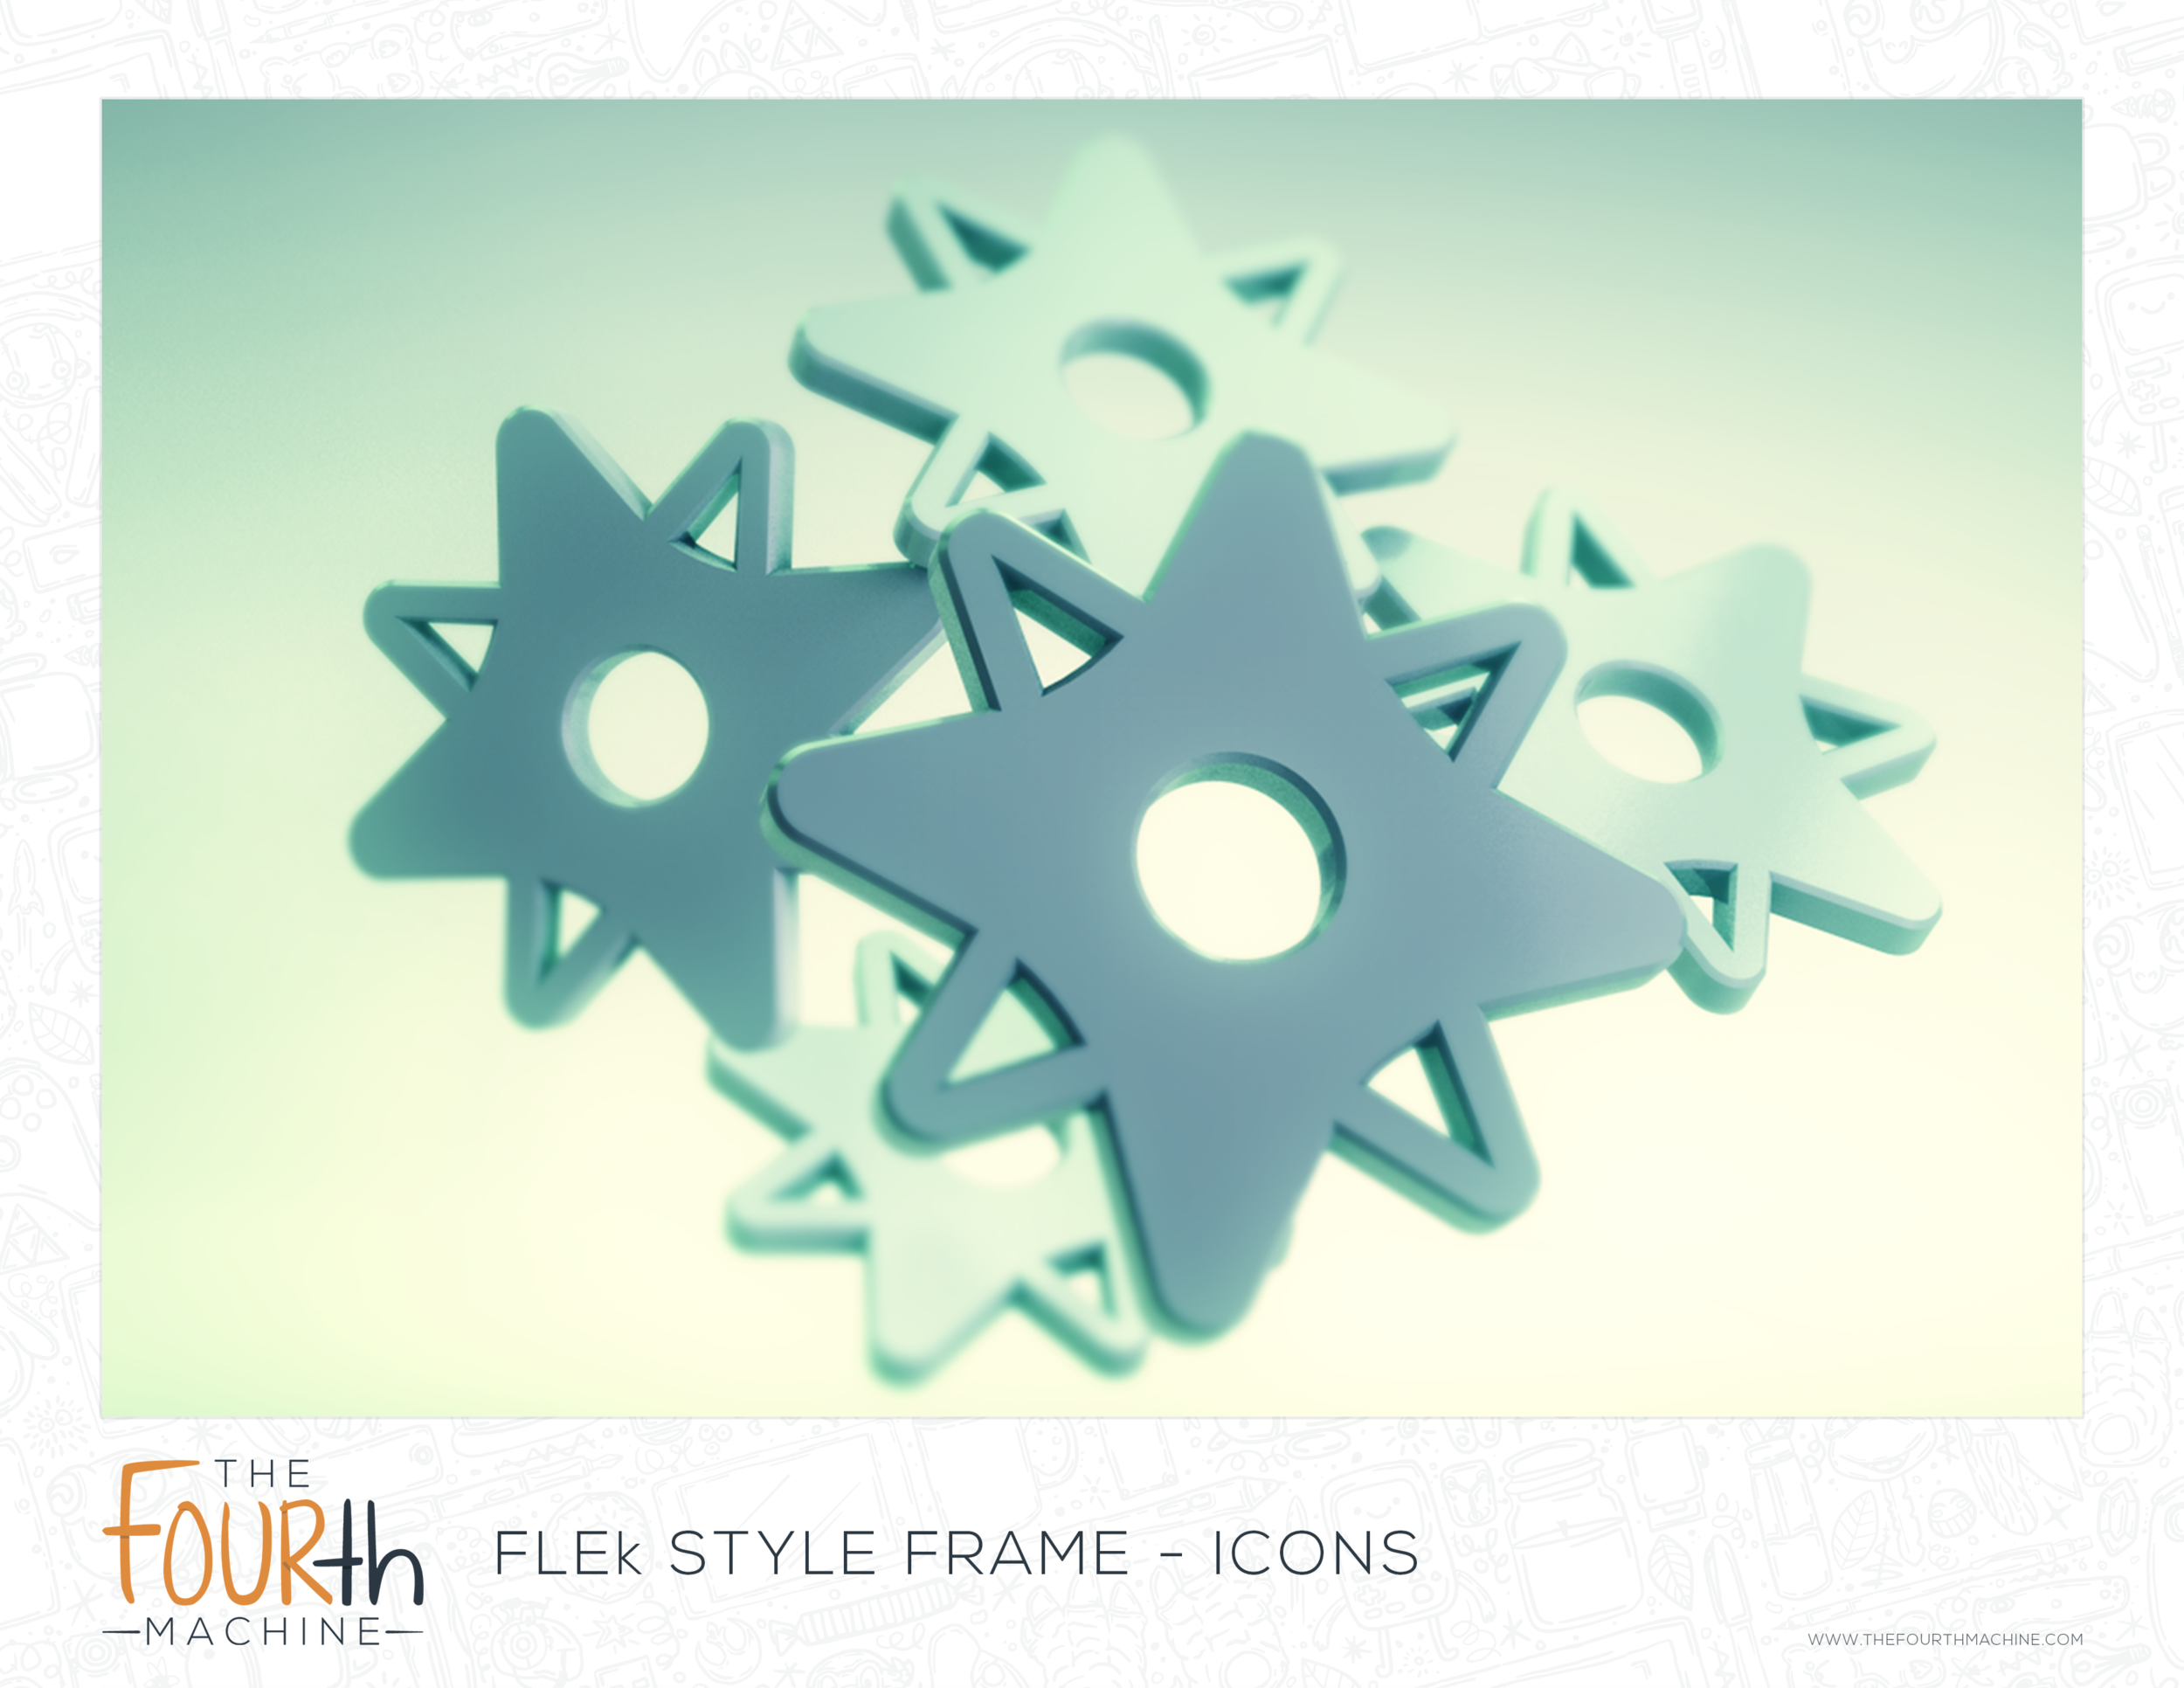 FLEk_Style_Frame_Icons.png